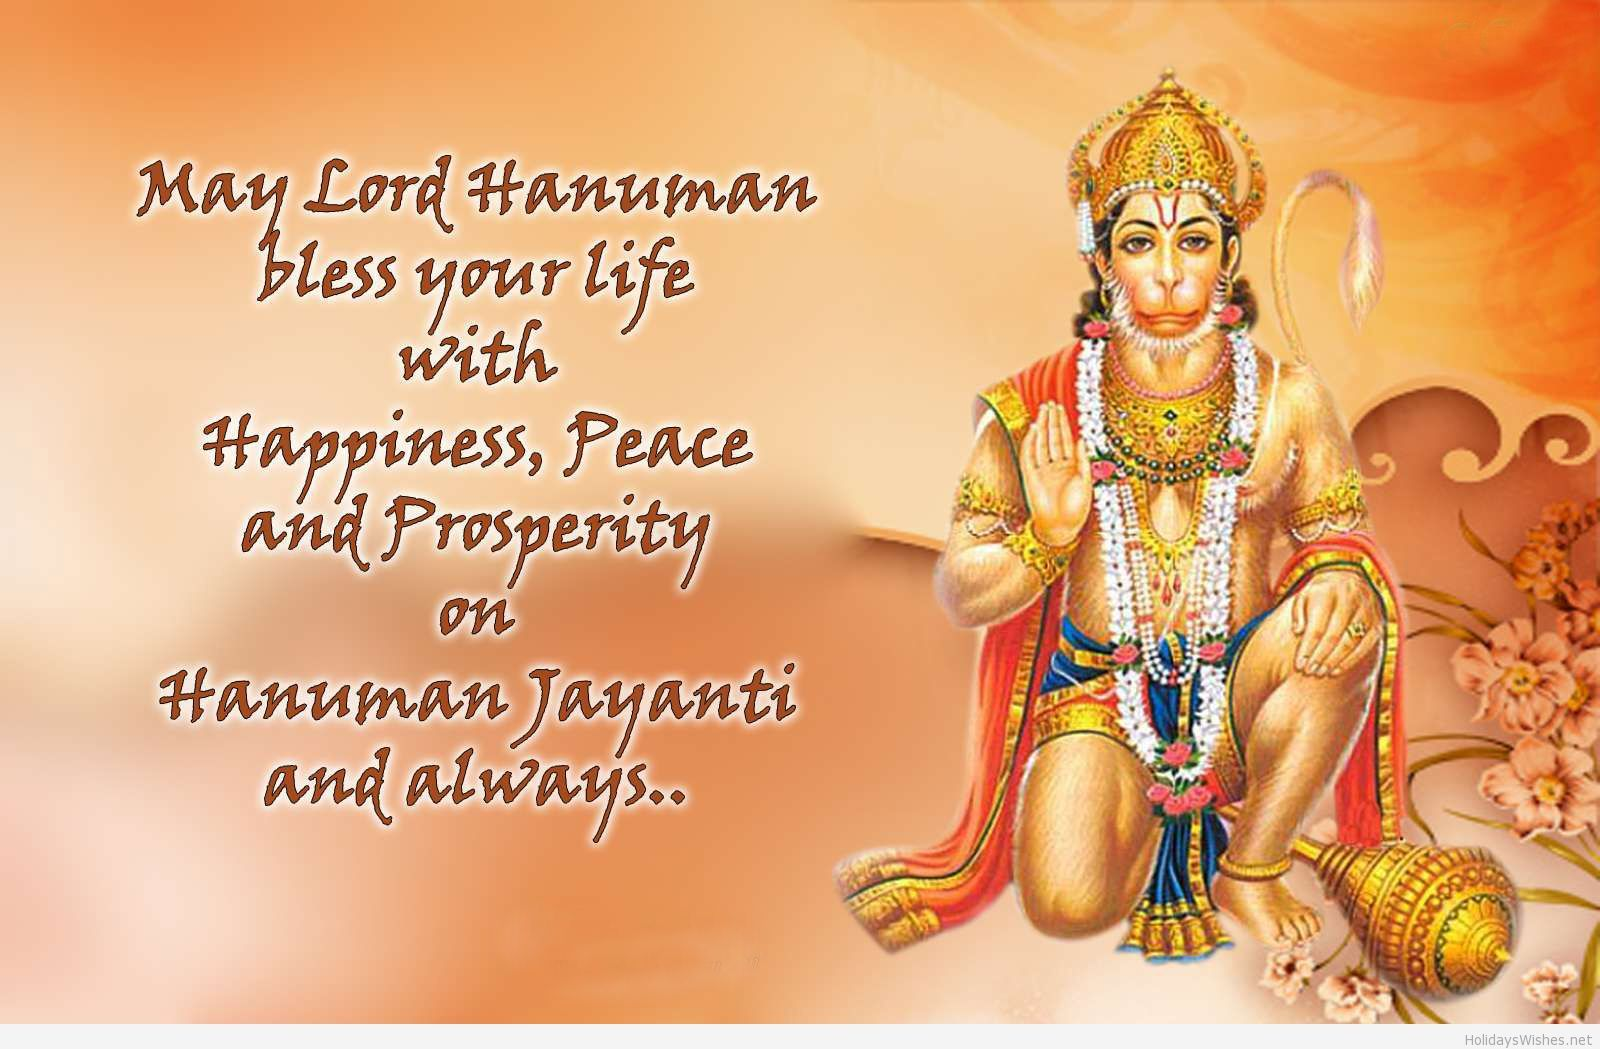 New Home Quotes Blessings Quotespoem Com Happy Hanuman Jayanti Happy Hanuman Jayanti Wishes Hanuman